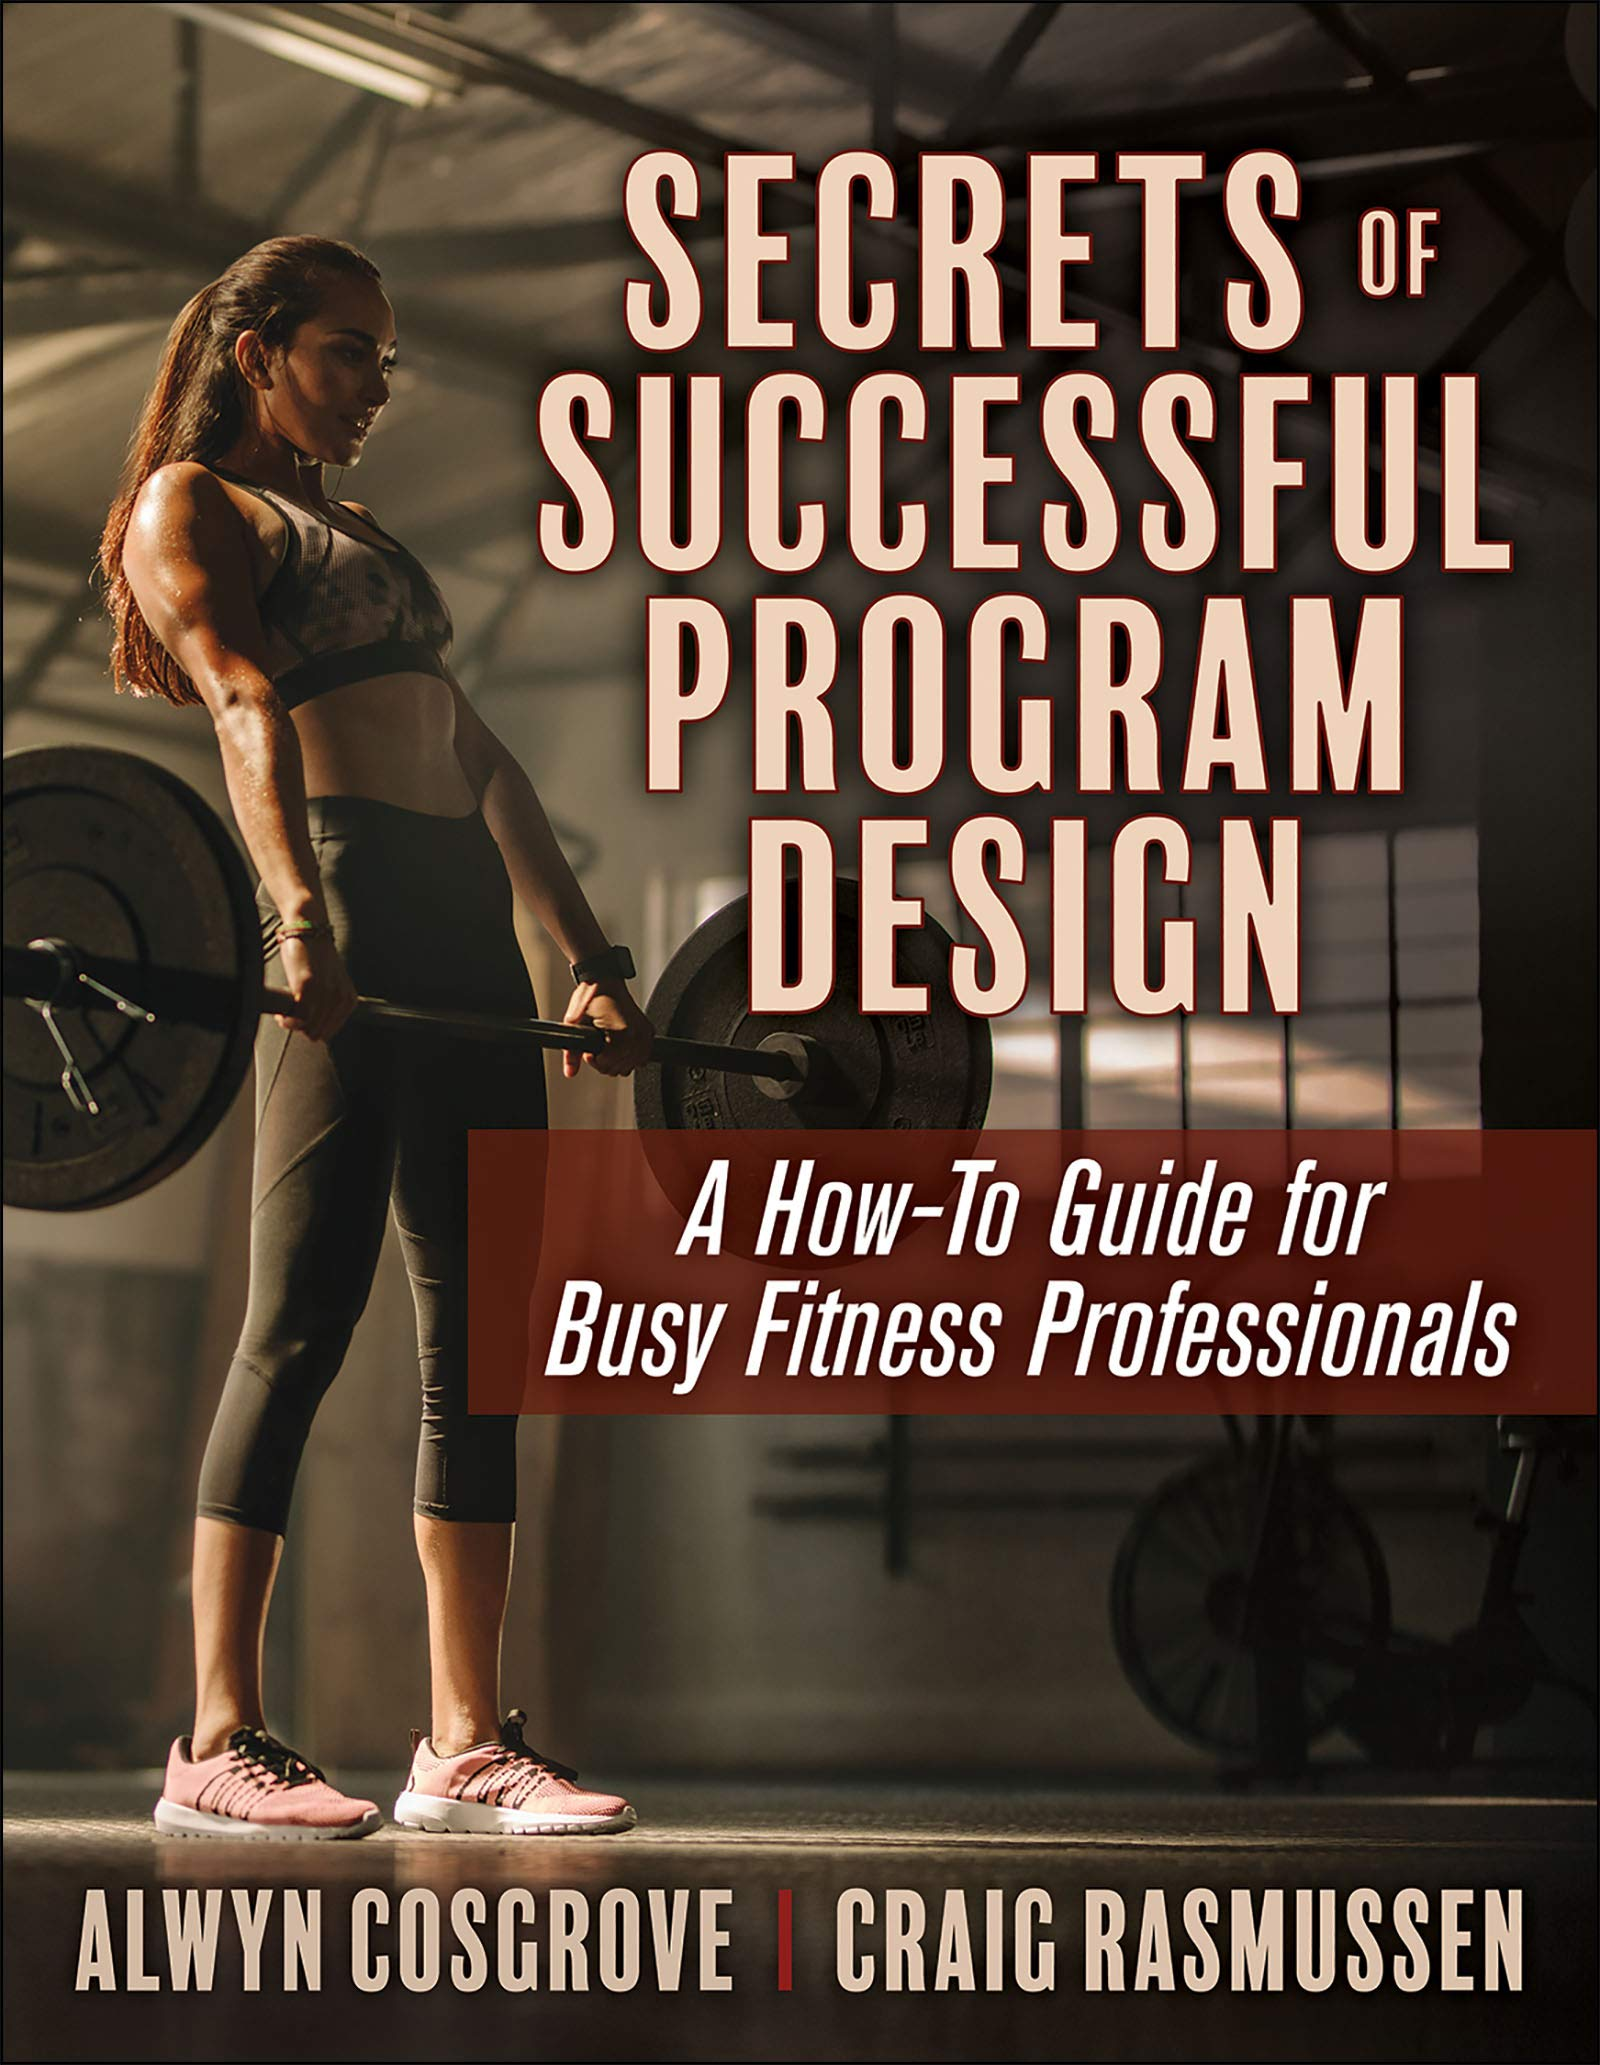 Image OfCosgrove, A: Secrets Of Successful Program Design: A How-To Guide For Busy Fitness Professionals